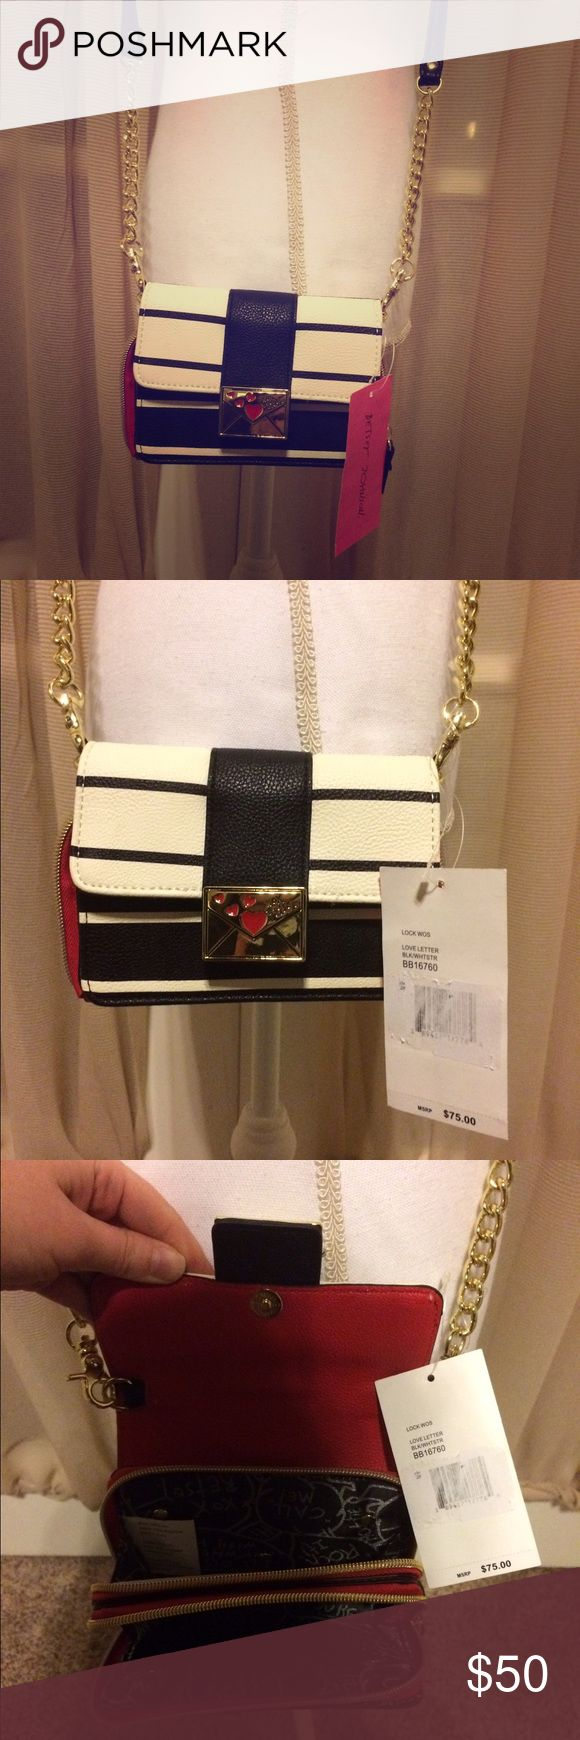 """🆕NWT Betsey Johnson crossbody love letter 💌 NWT Betsey Johnson mini cross body love letter purse. Has gold detachable strap with a strap drop of 24"""". Other measurements: 6 1/4"""" x 4"""" x 4"""". Purse has black & white stripes on the exterior & a red interior with Betsey's signature interior writing. 2 large open pockets on the inside & 3 small slots. Magnetic button closure with really cute gold love letter accent. Reasonable offers warmly welcomed 😊 Betsey Johnson Bags Mini Bags"""